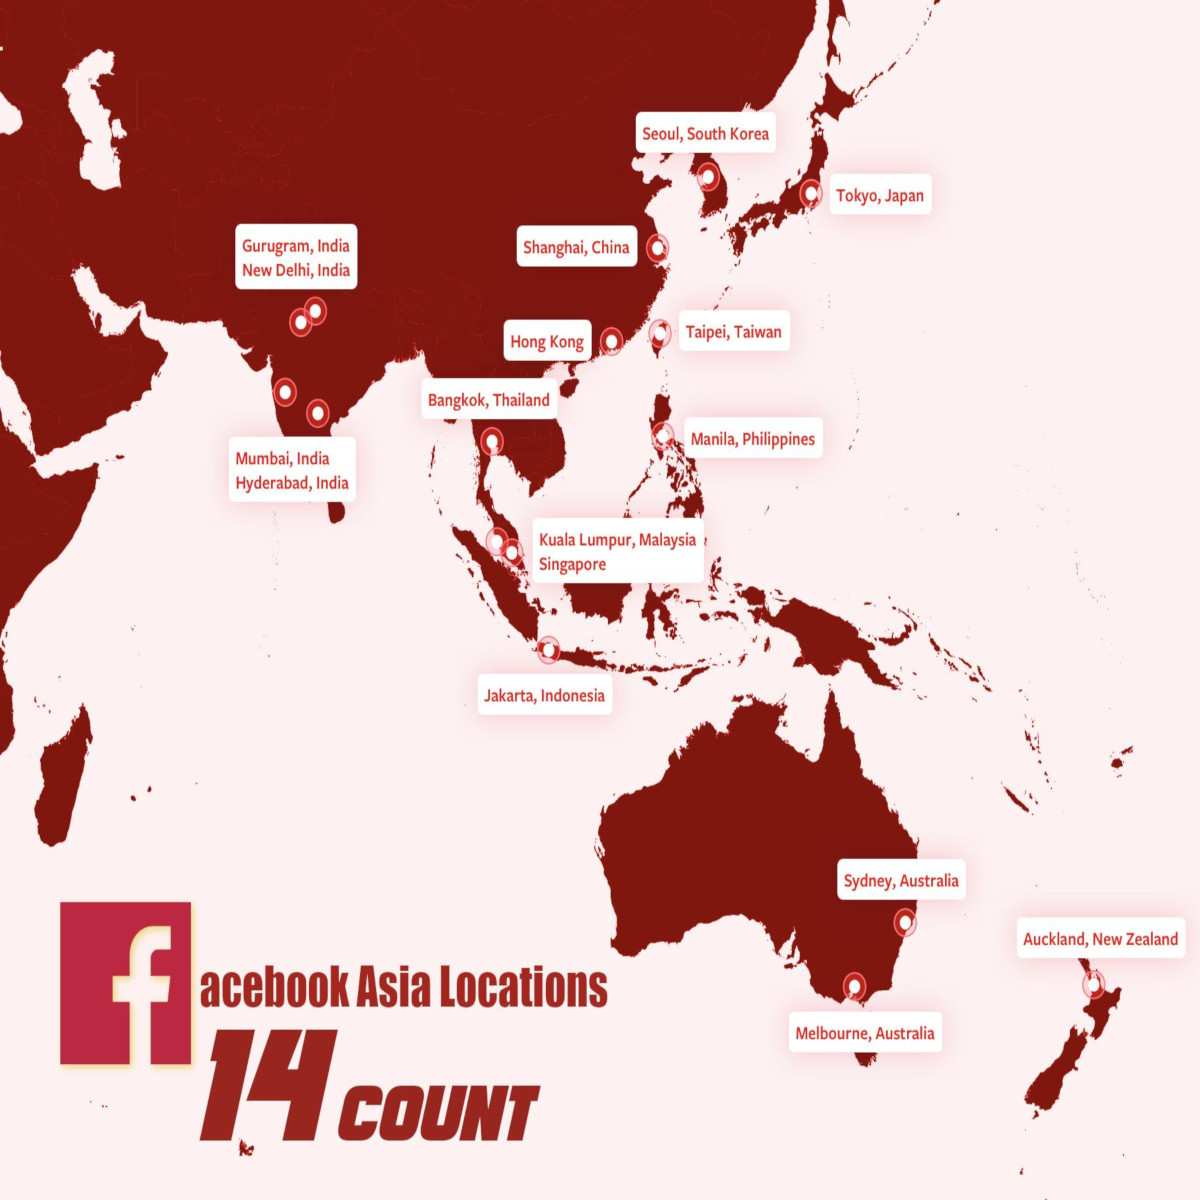 Map of Asian Continent showing a total of 14 Facebook locations.